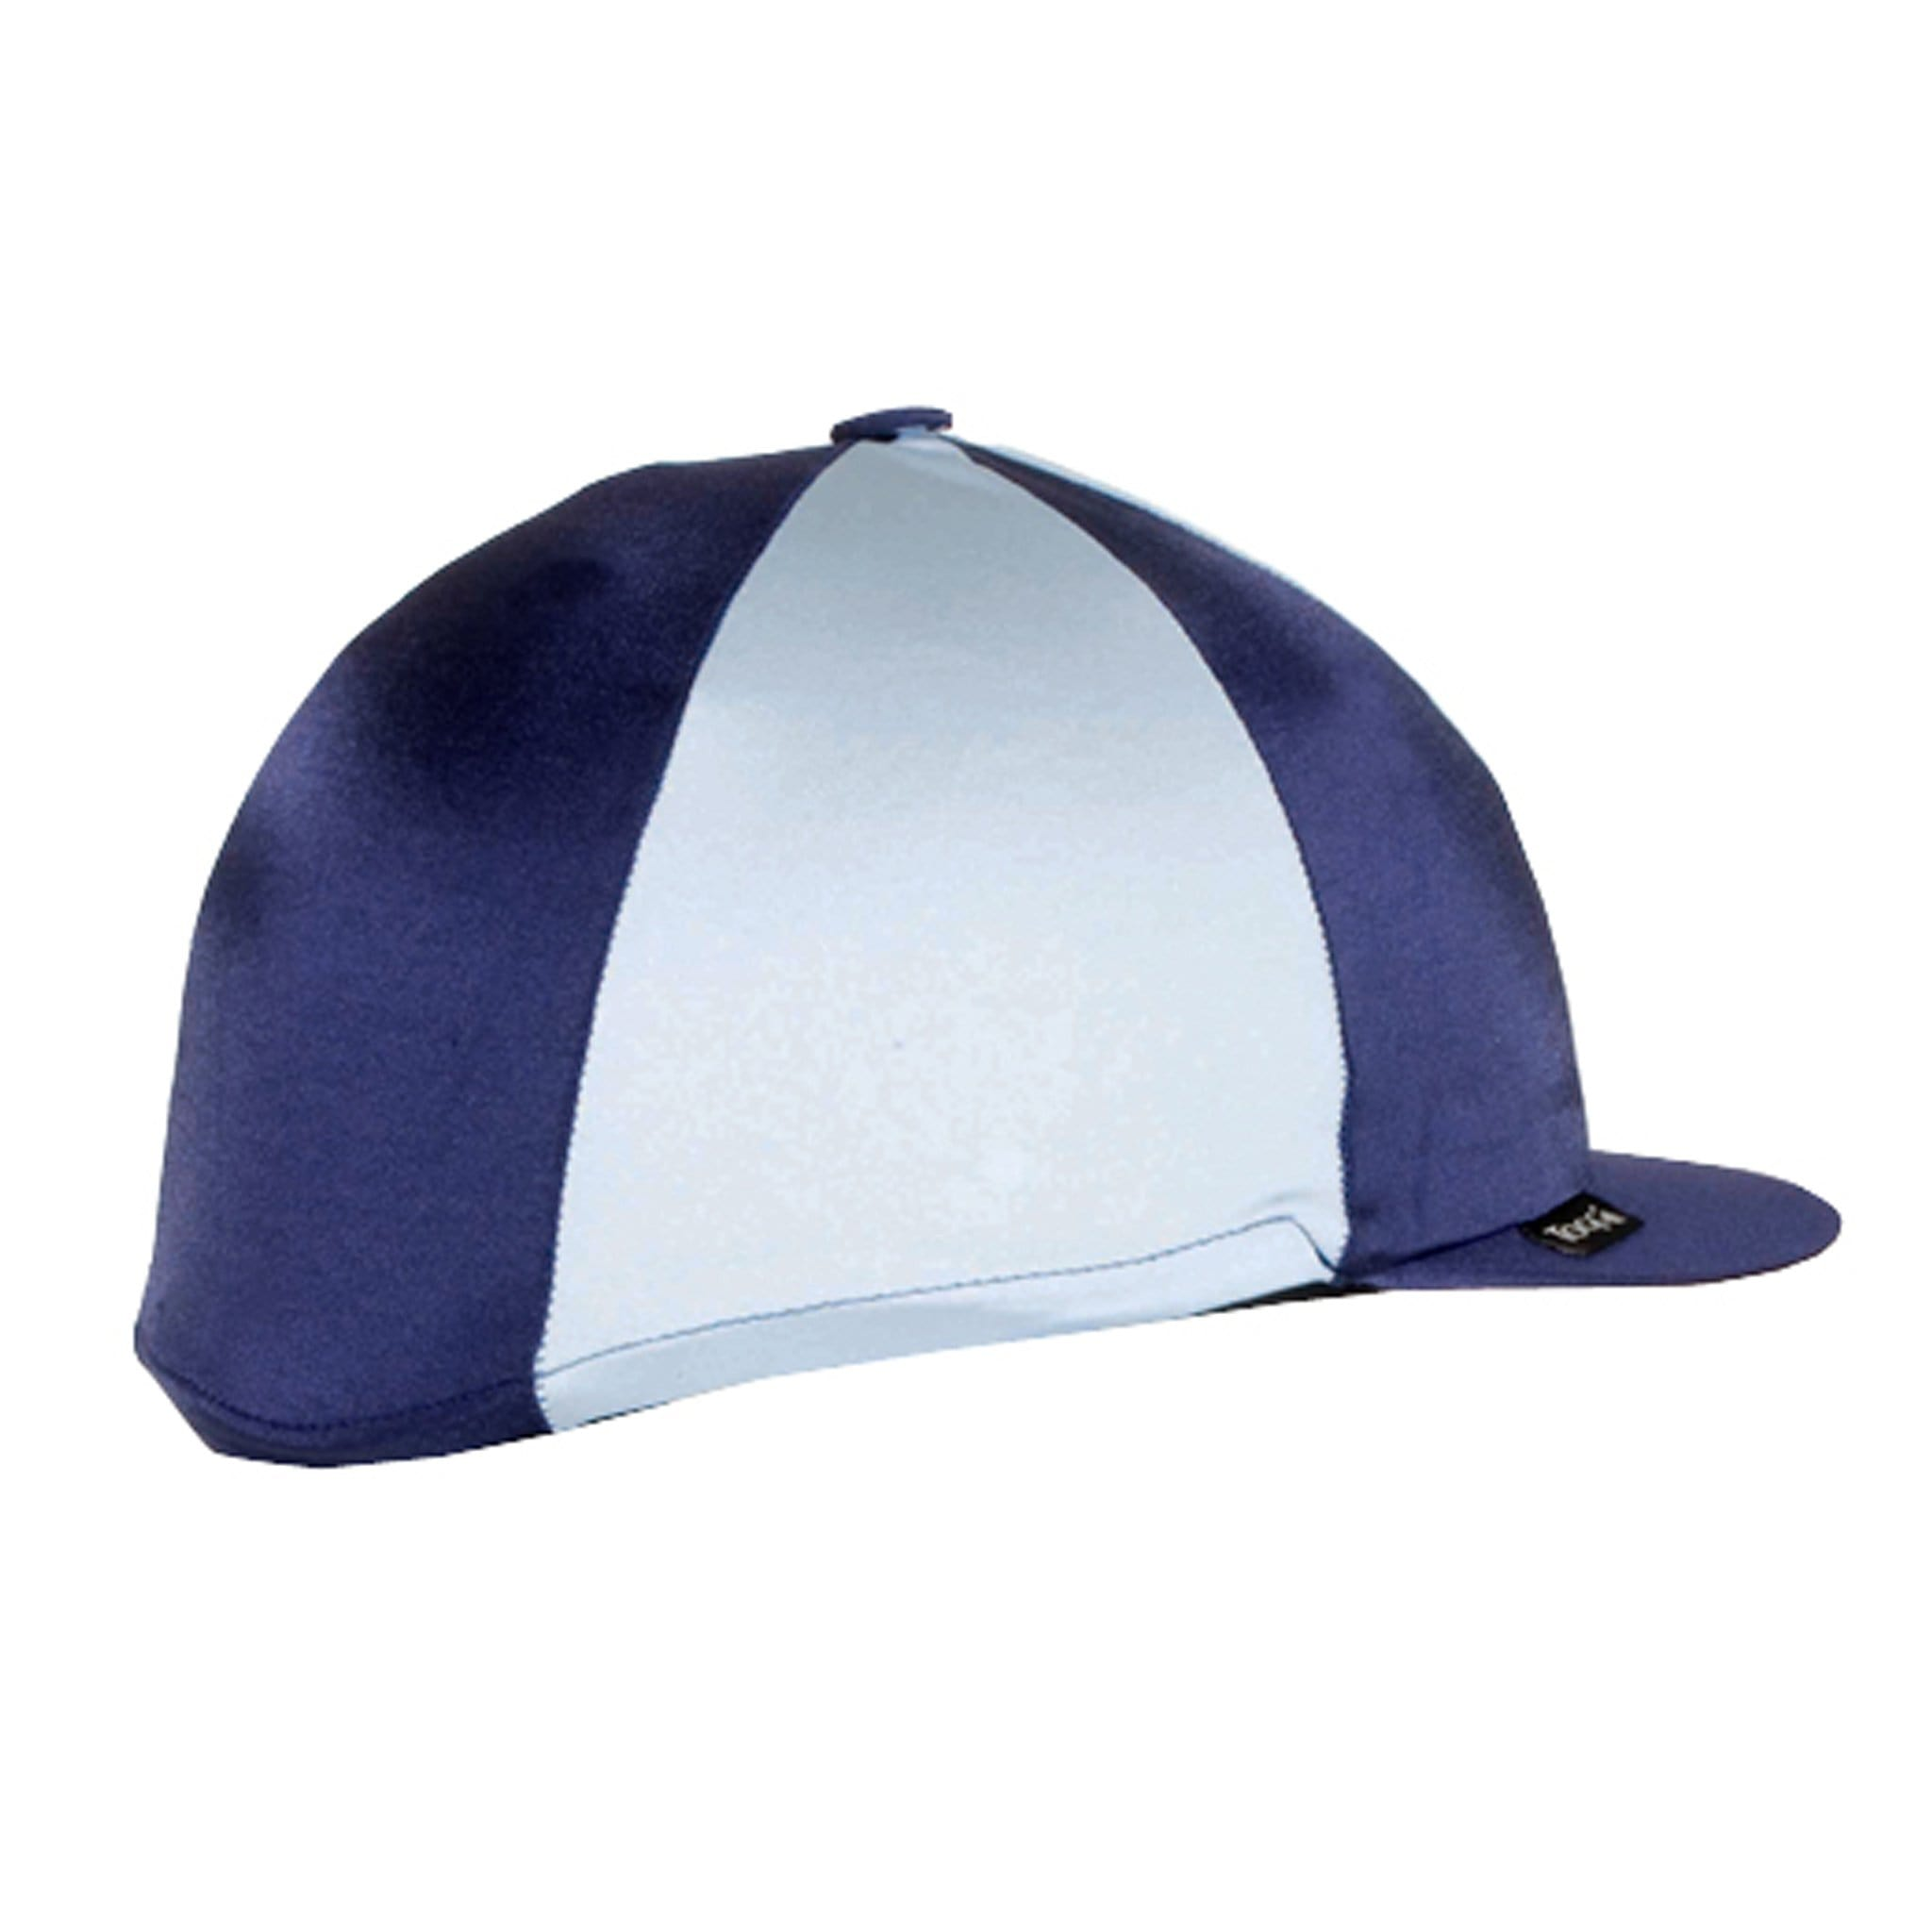 Champion Quartered Cap Cover Navy and Light Blue